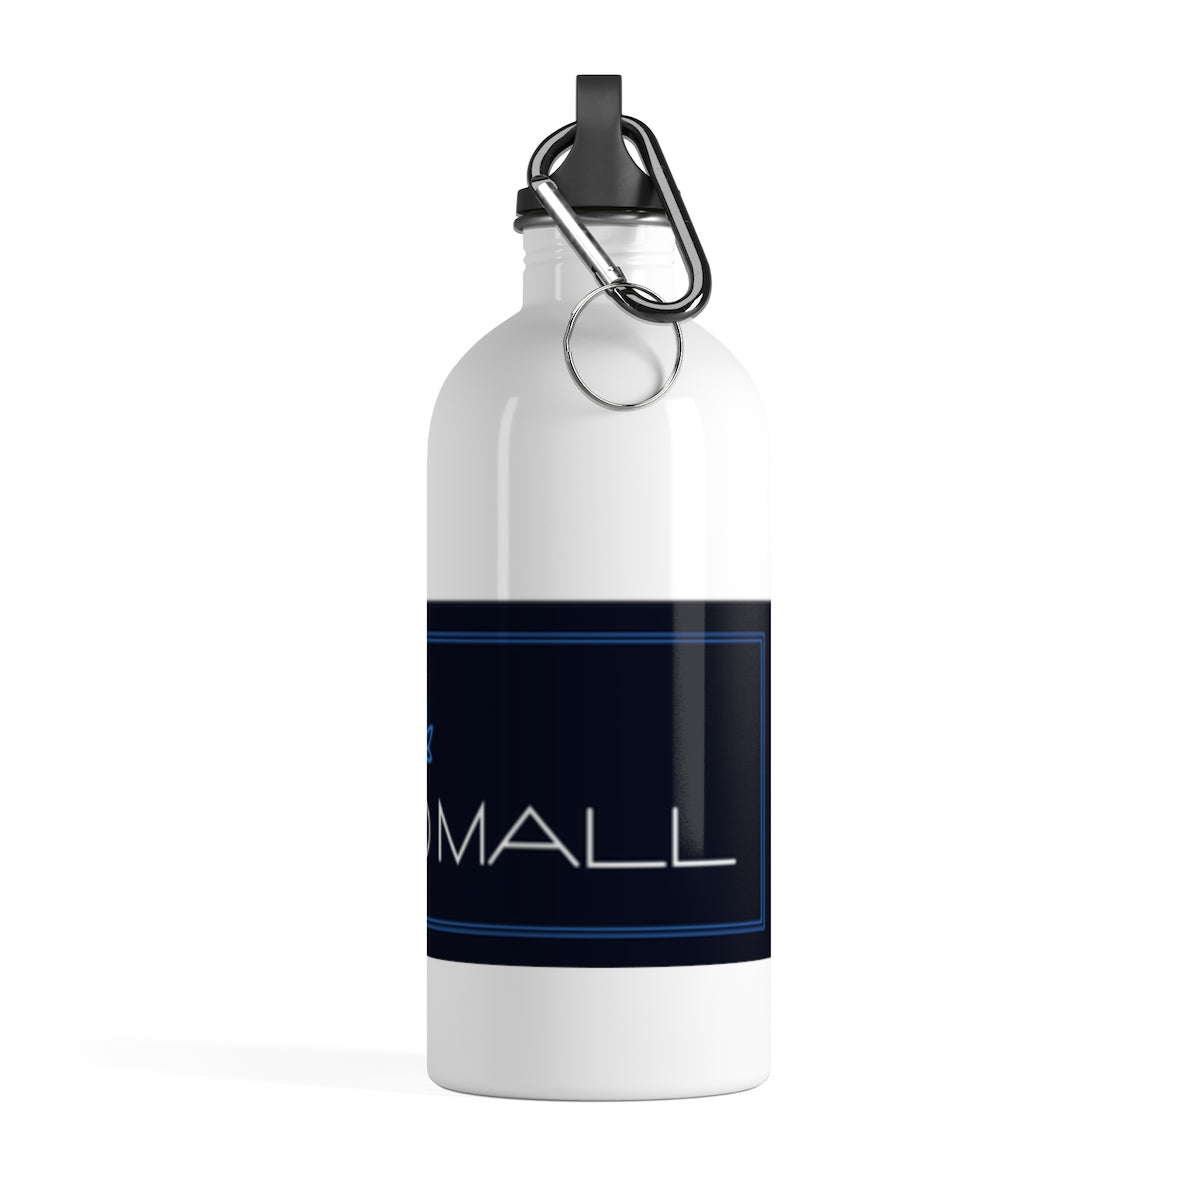 Stainless Steel Water Bottle - My CBD Mall